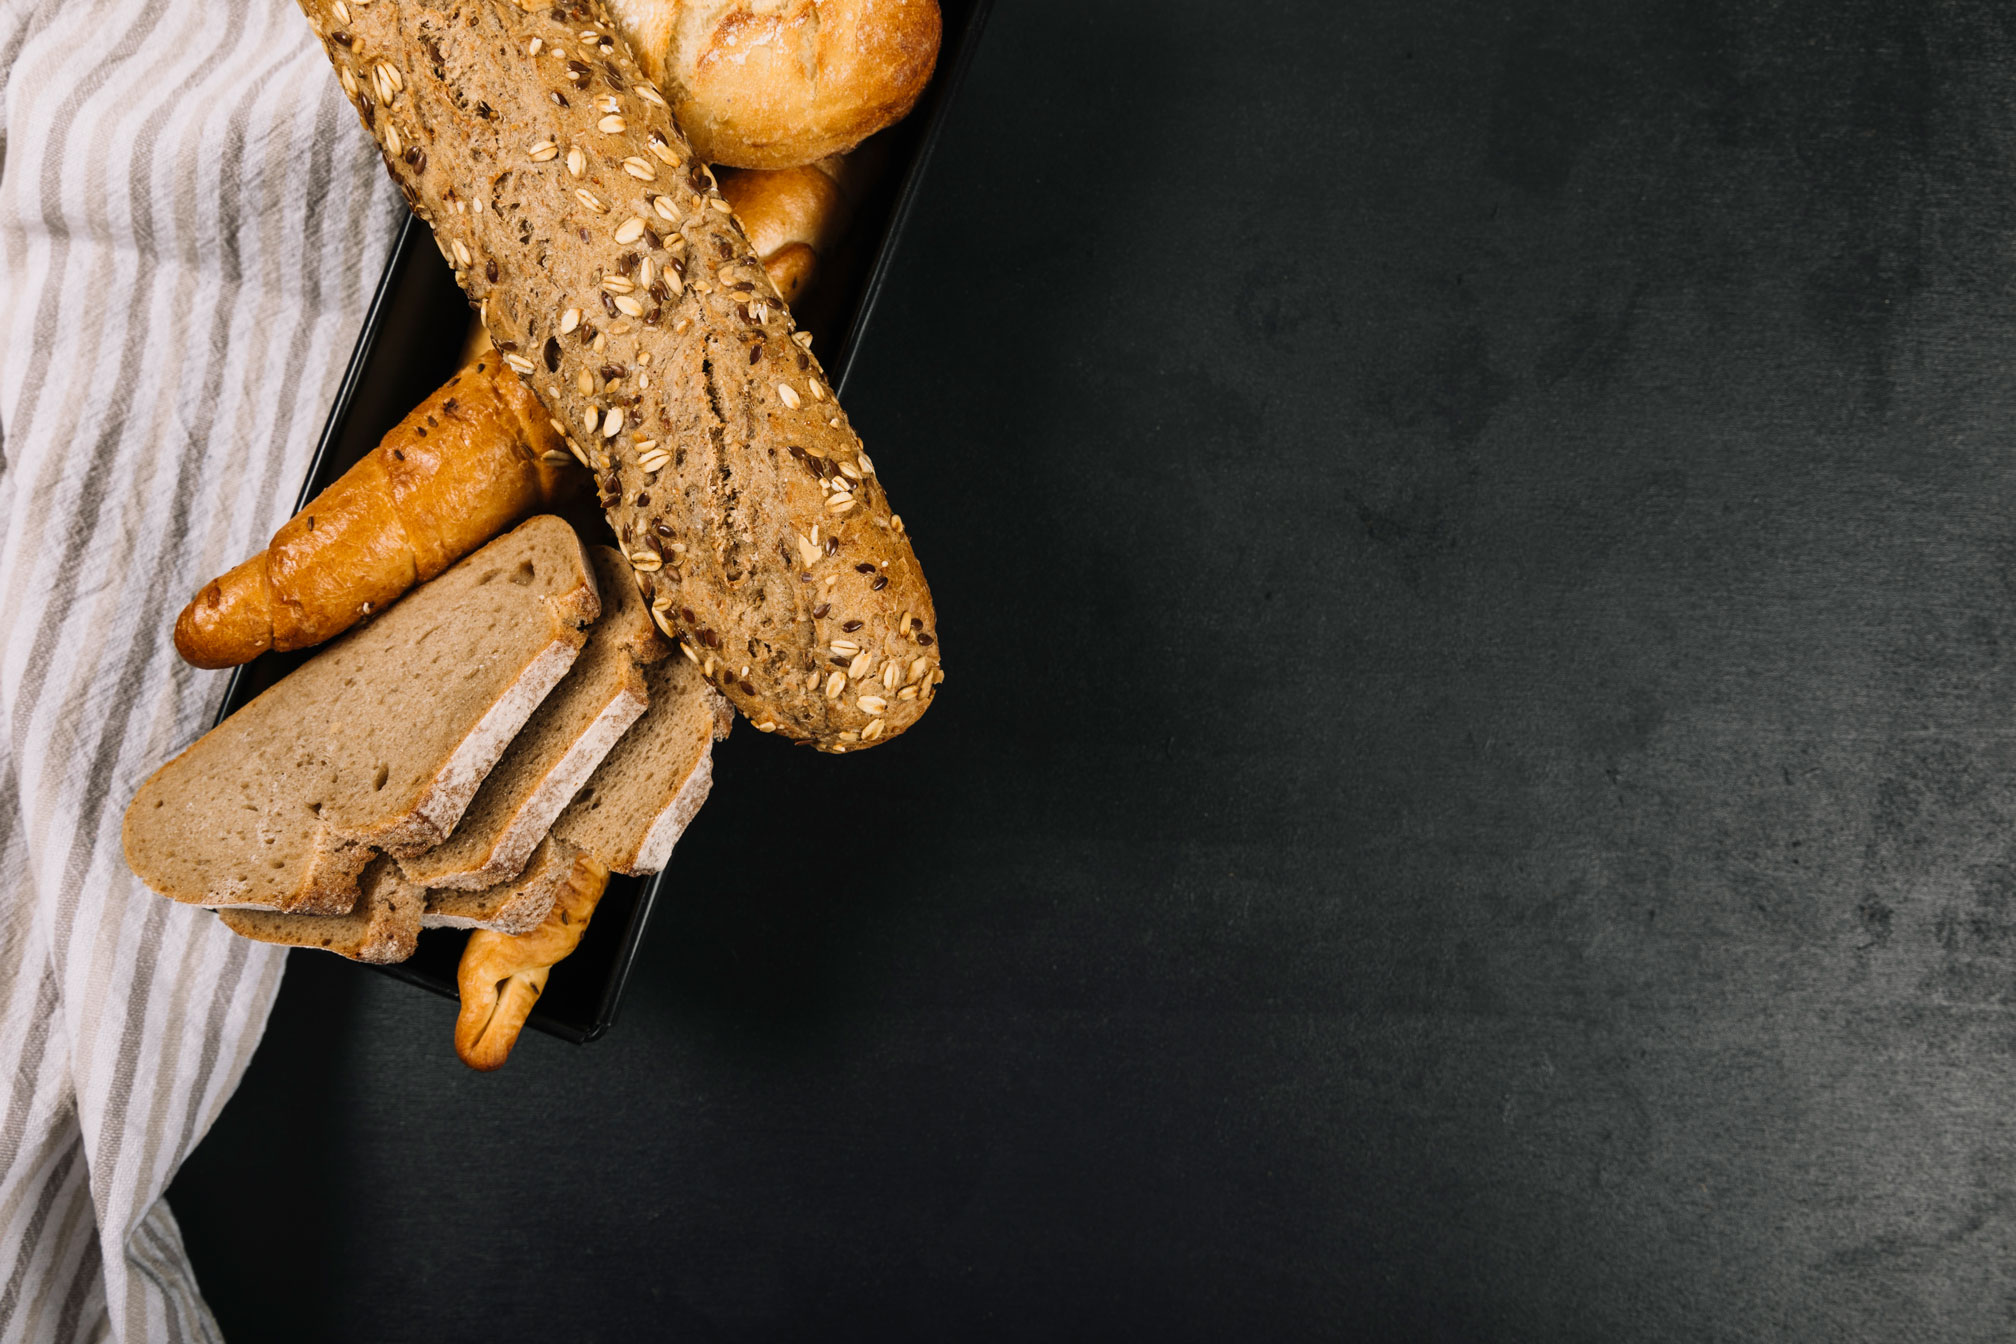 different types of bread on a black table chalkboard